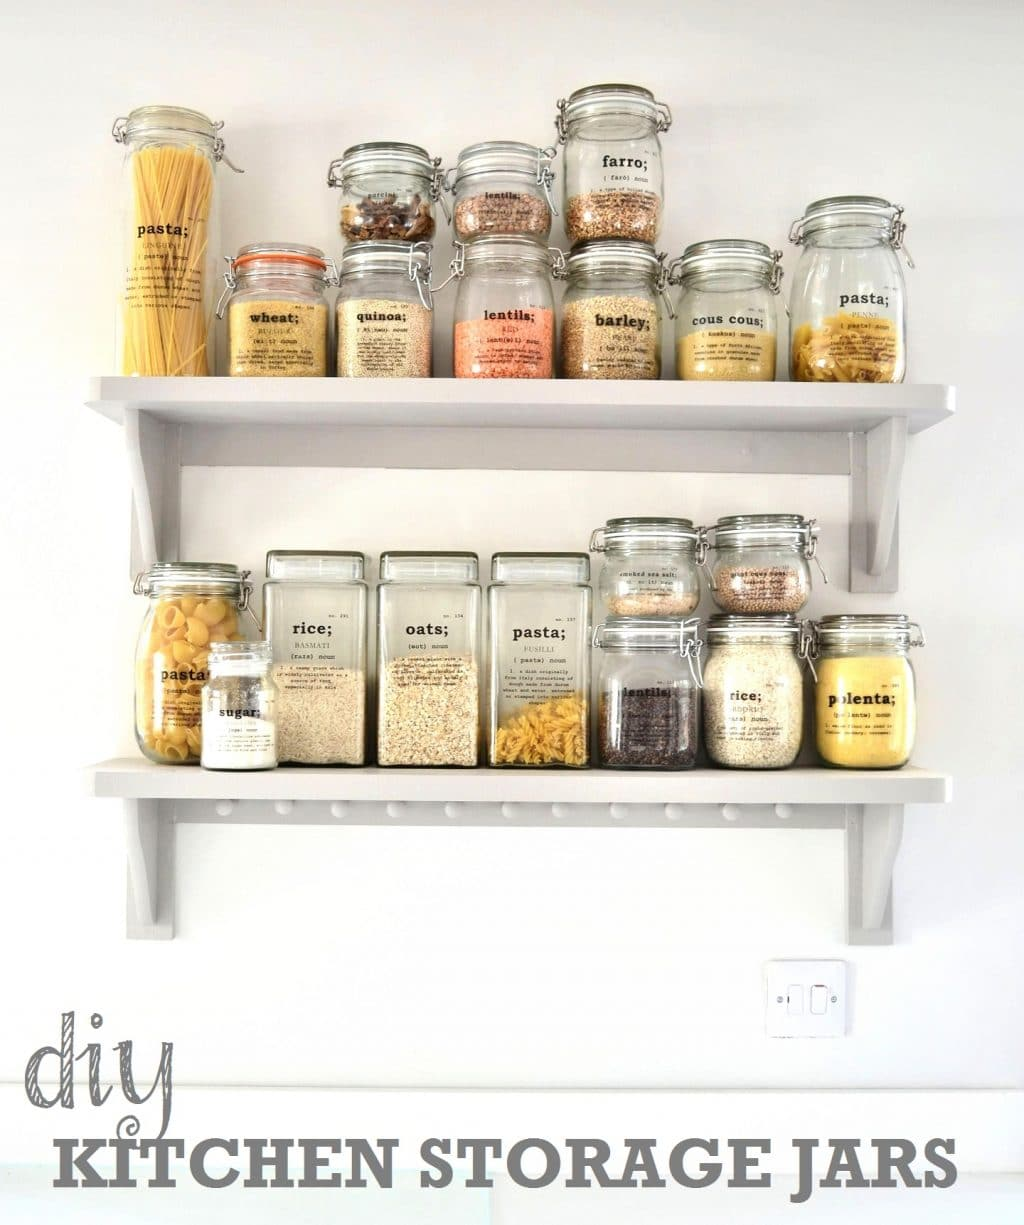 Kitchen Storage Diy Ideas: DIY Kitchen Storage Ideas: Getting Organised In The